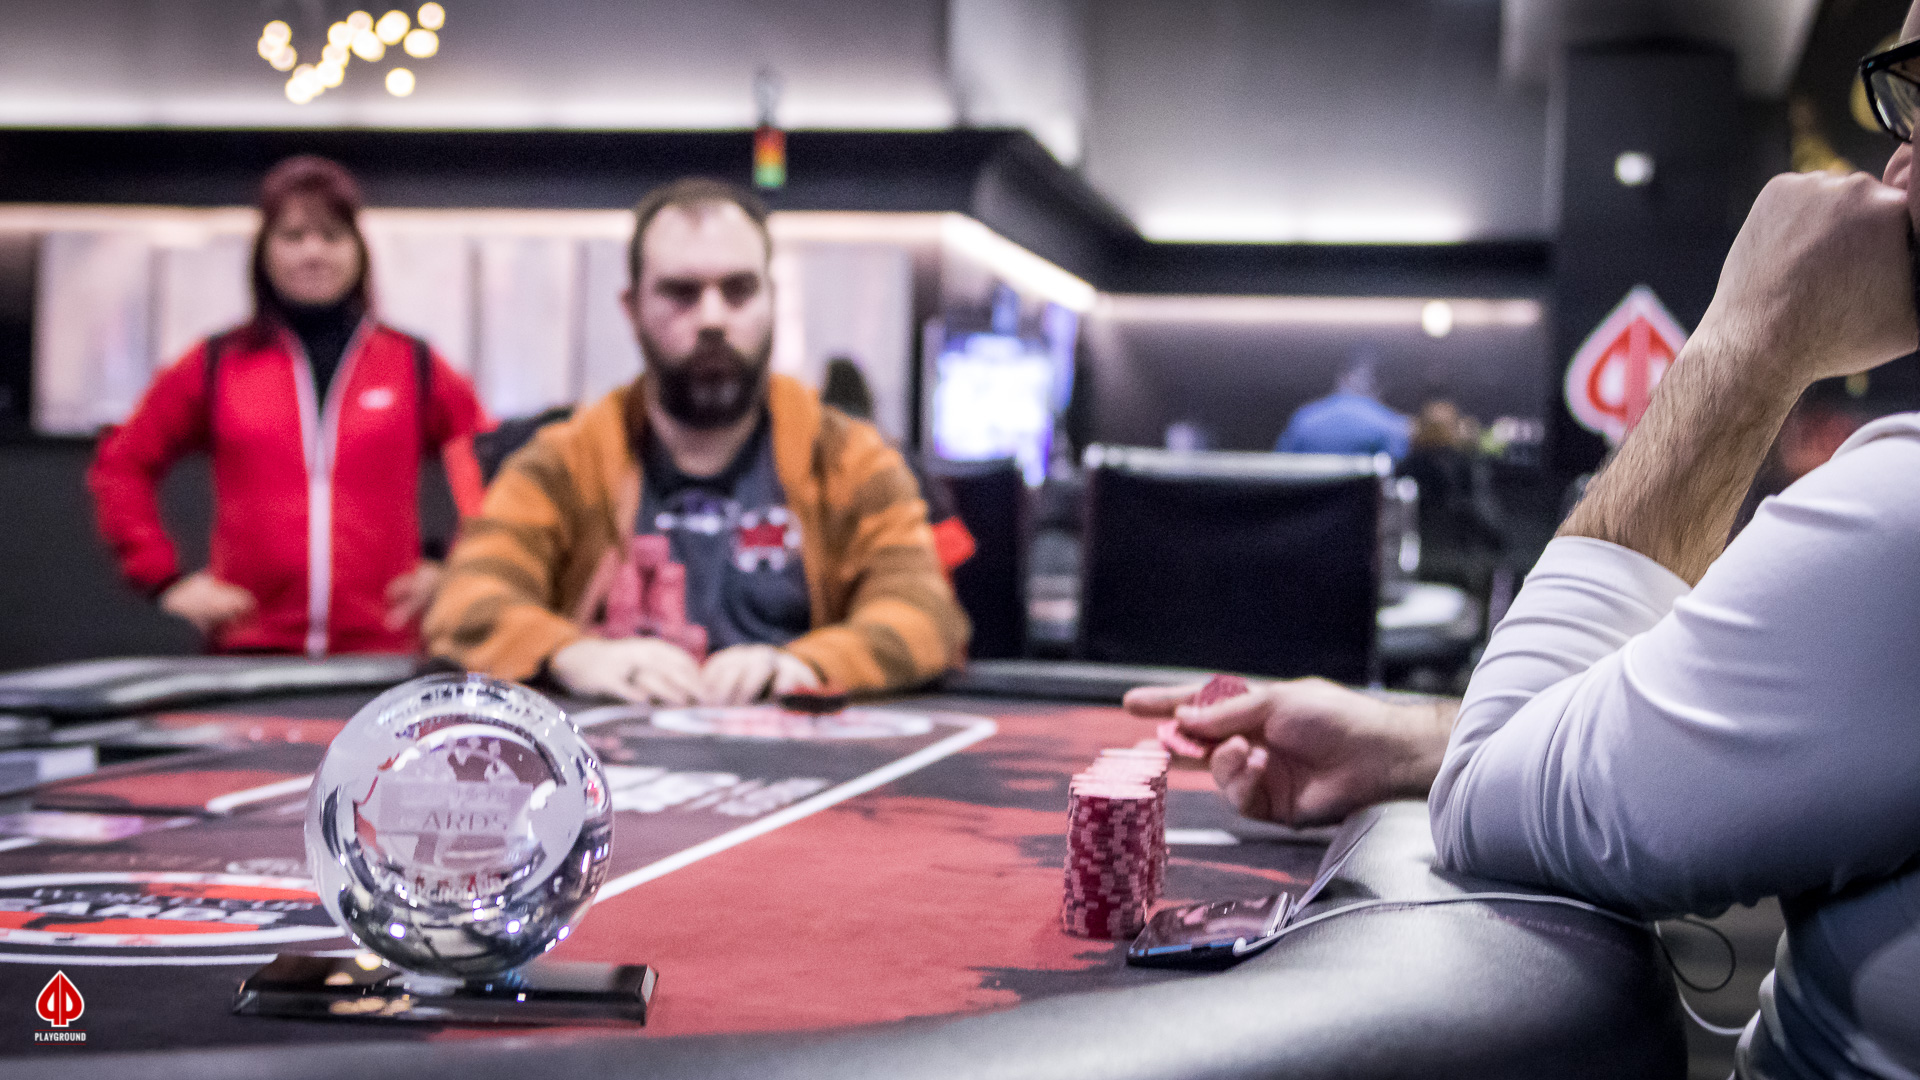 The tournament is heads-up between Ozor and Drolet-Poitras